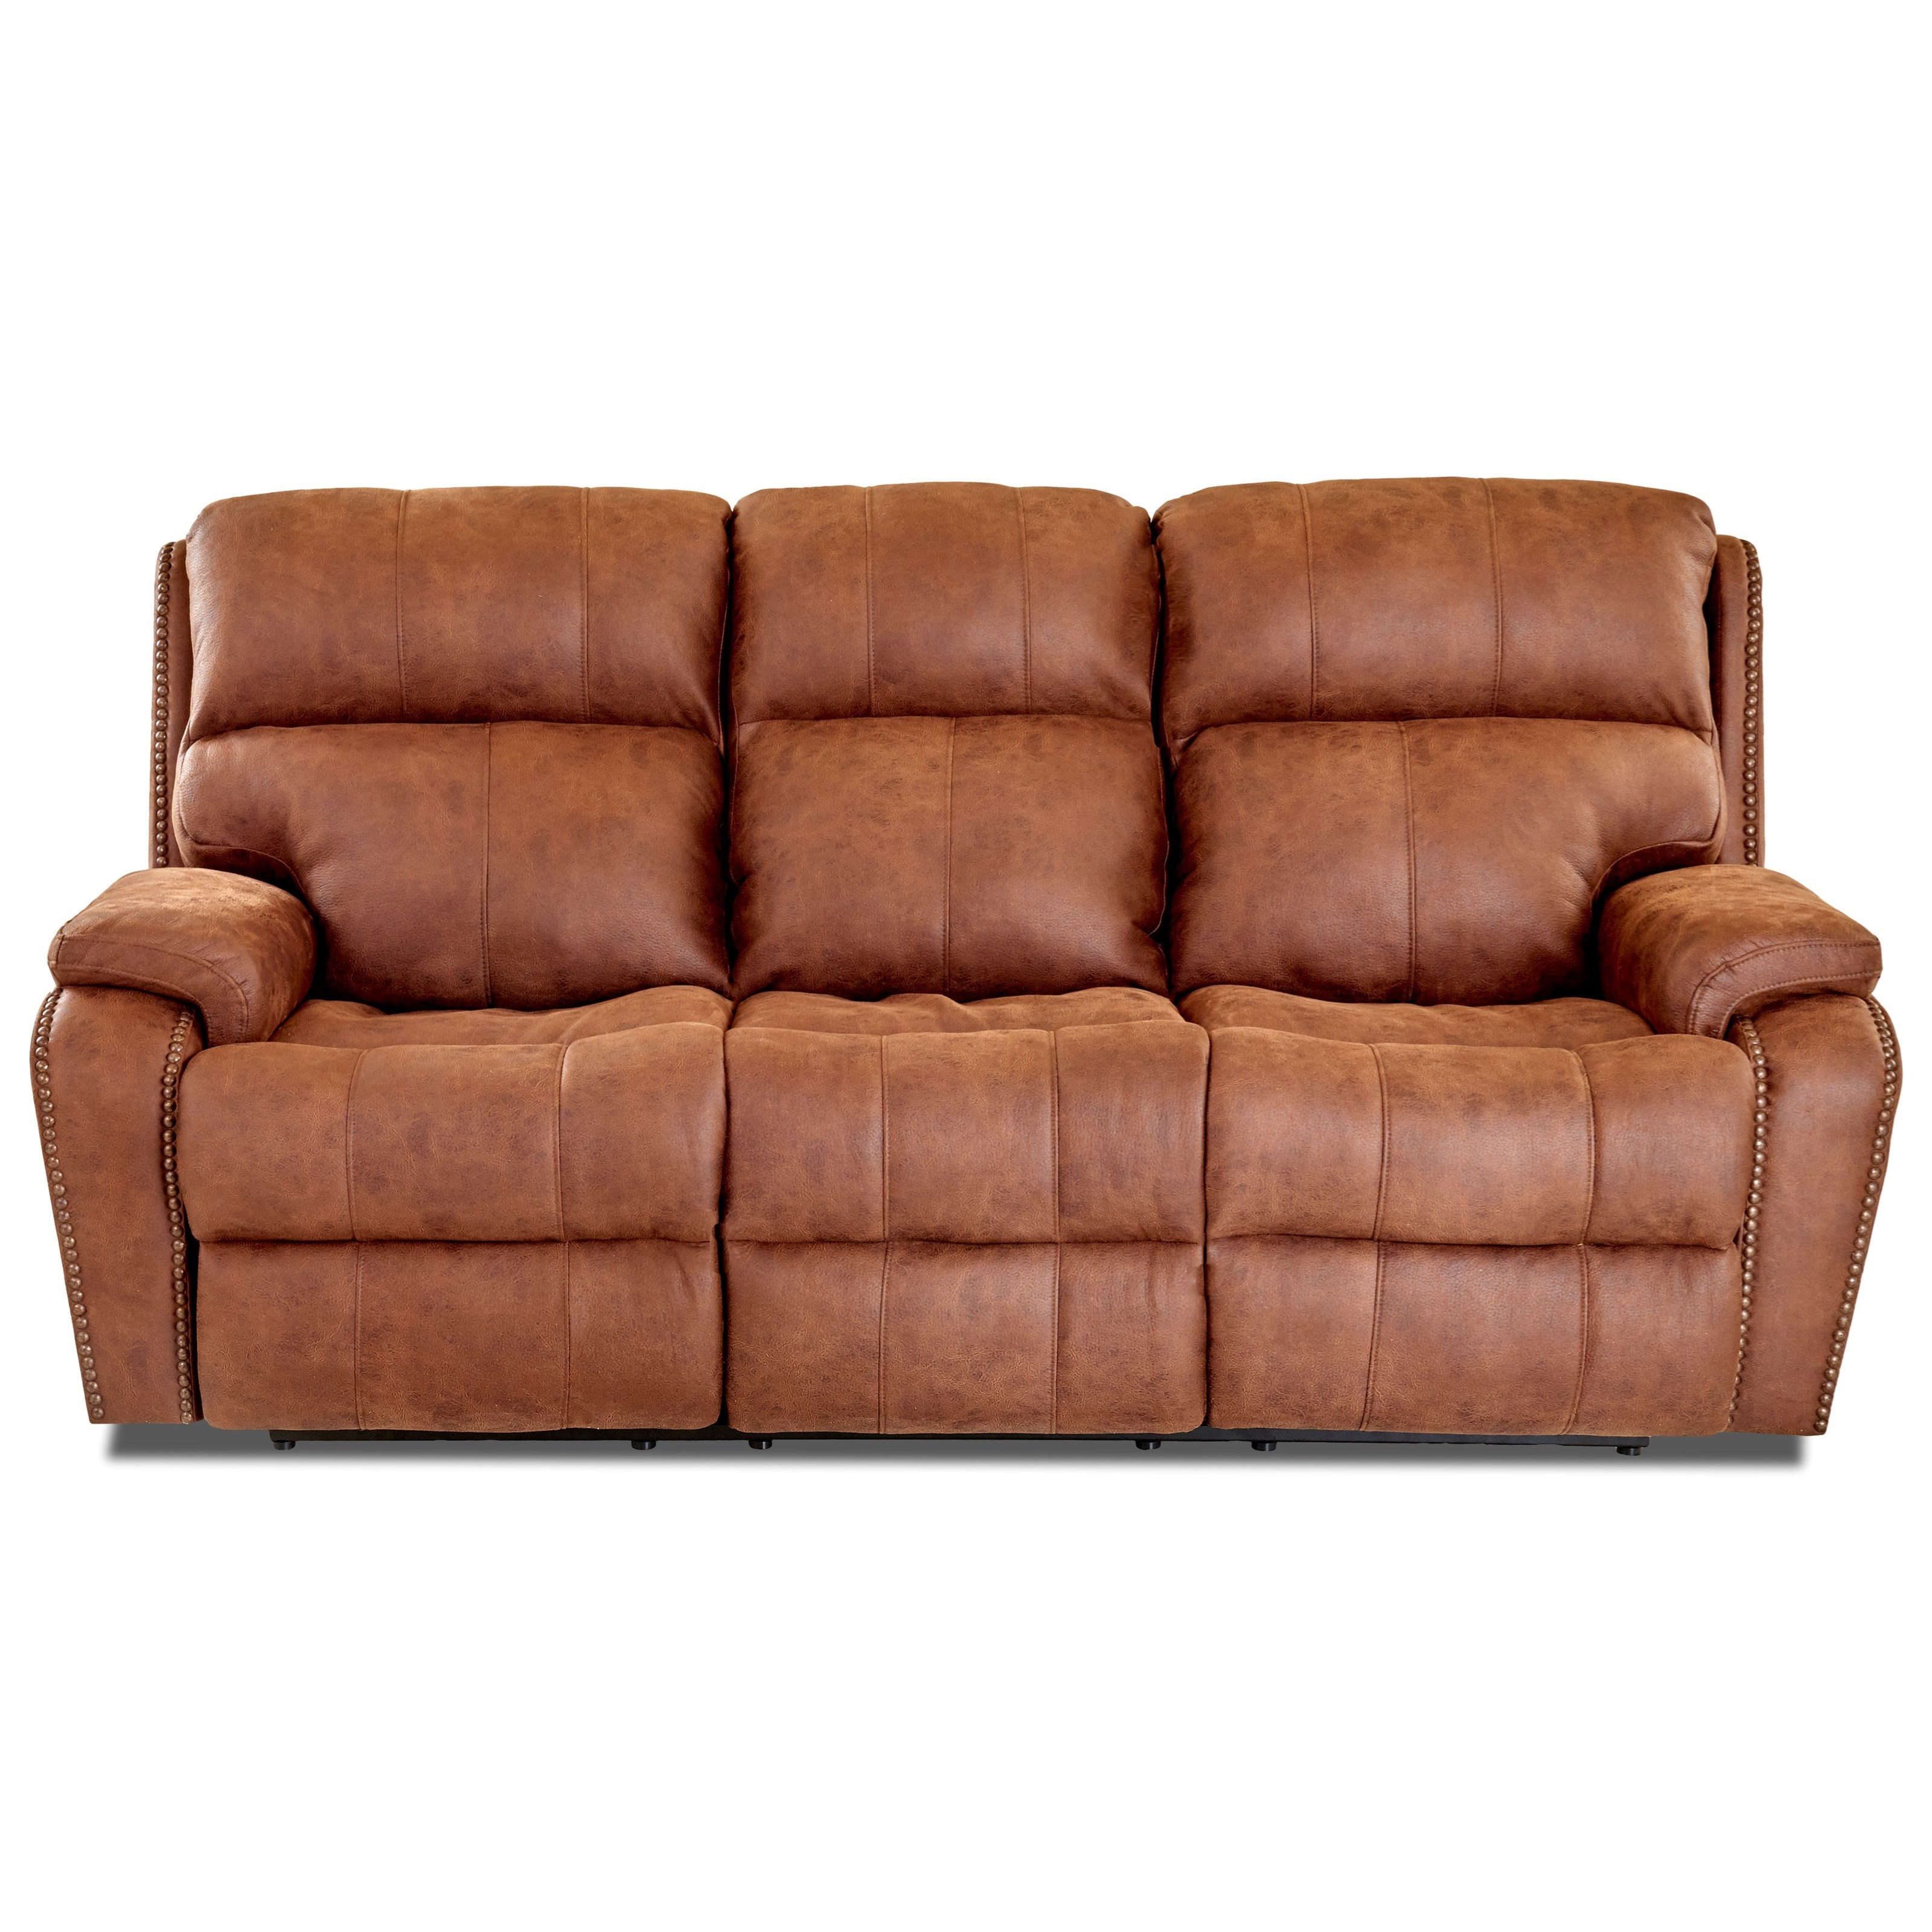 Averett Reclining Sofa w/ Nails by Klaussner at Lapeer Furniture & Mattress Center